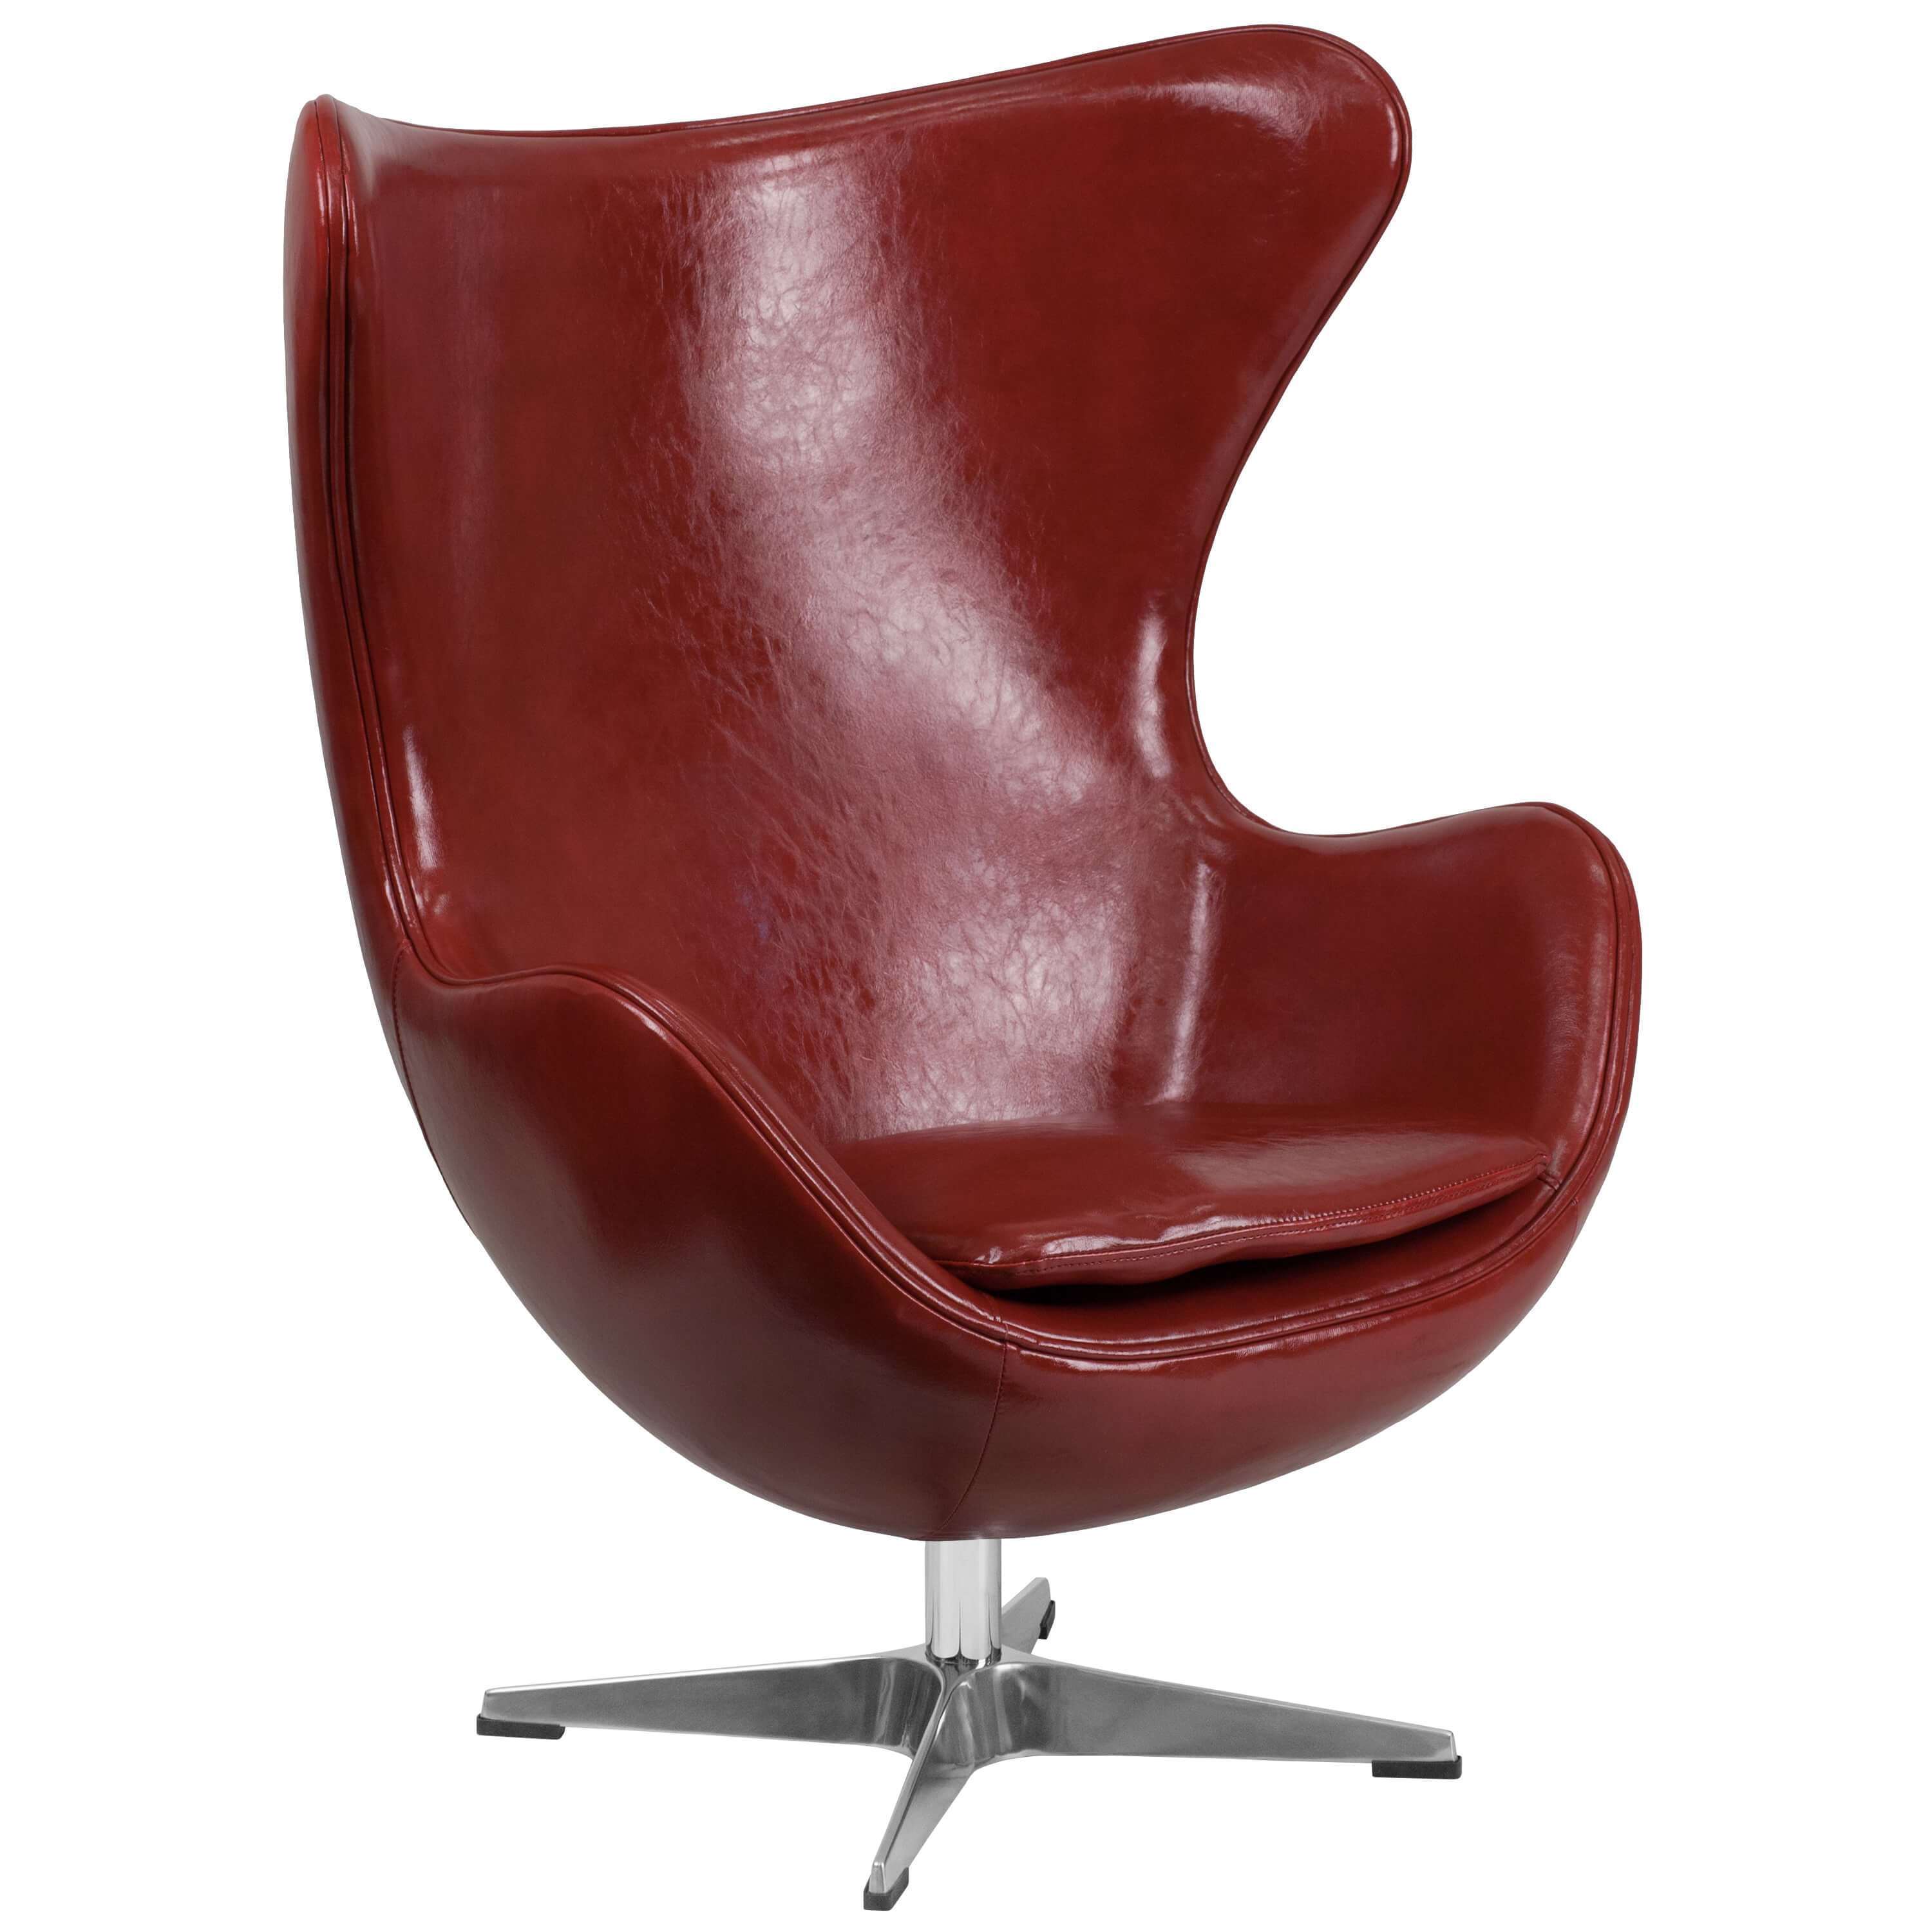 Office lounge chairs CUB ZB 15 GG ALF